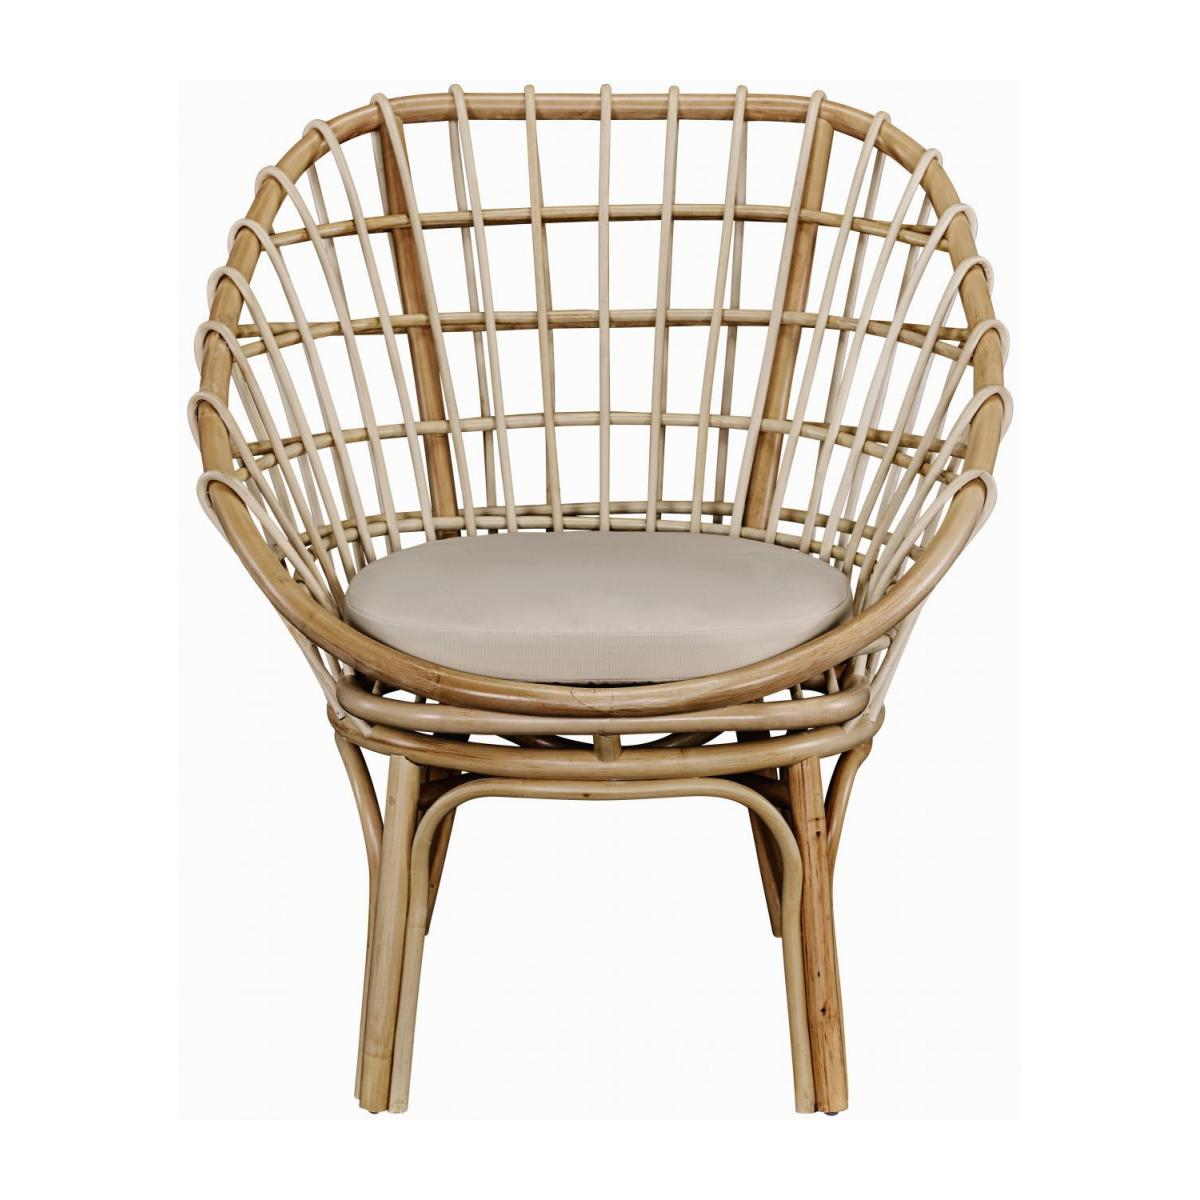 Sessel aus Rattan - Naturfarben - Design by Adrien Carvès n°3